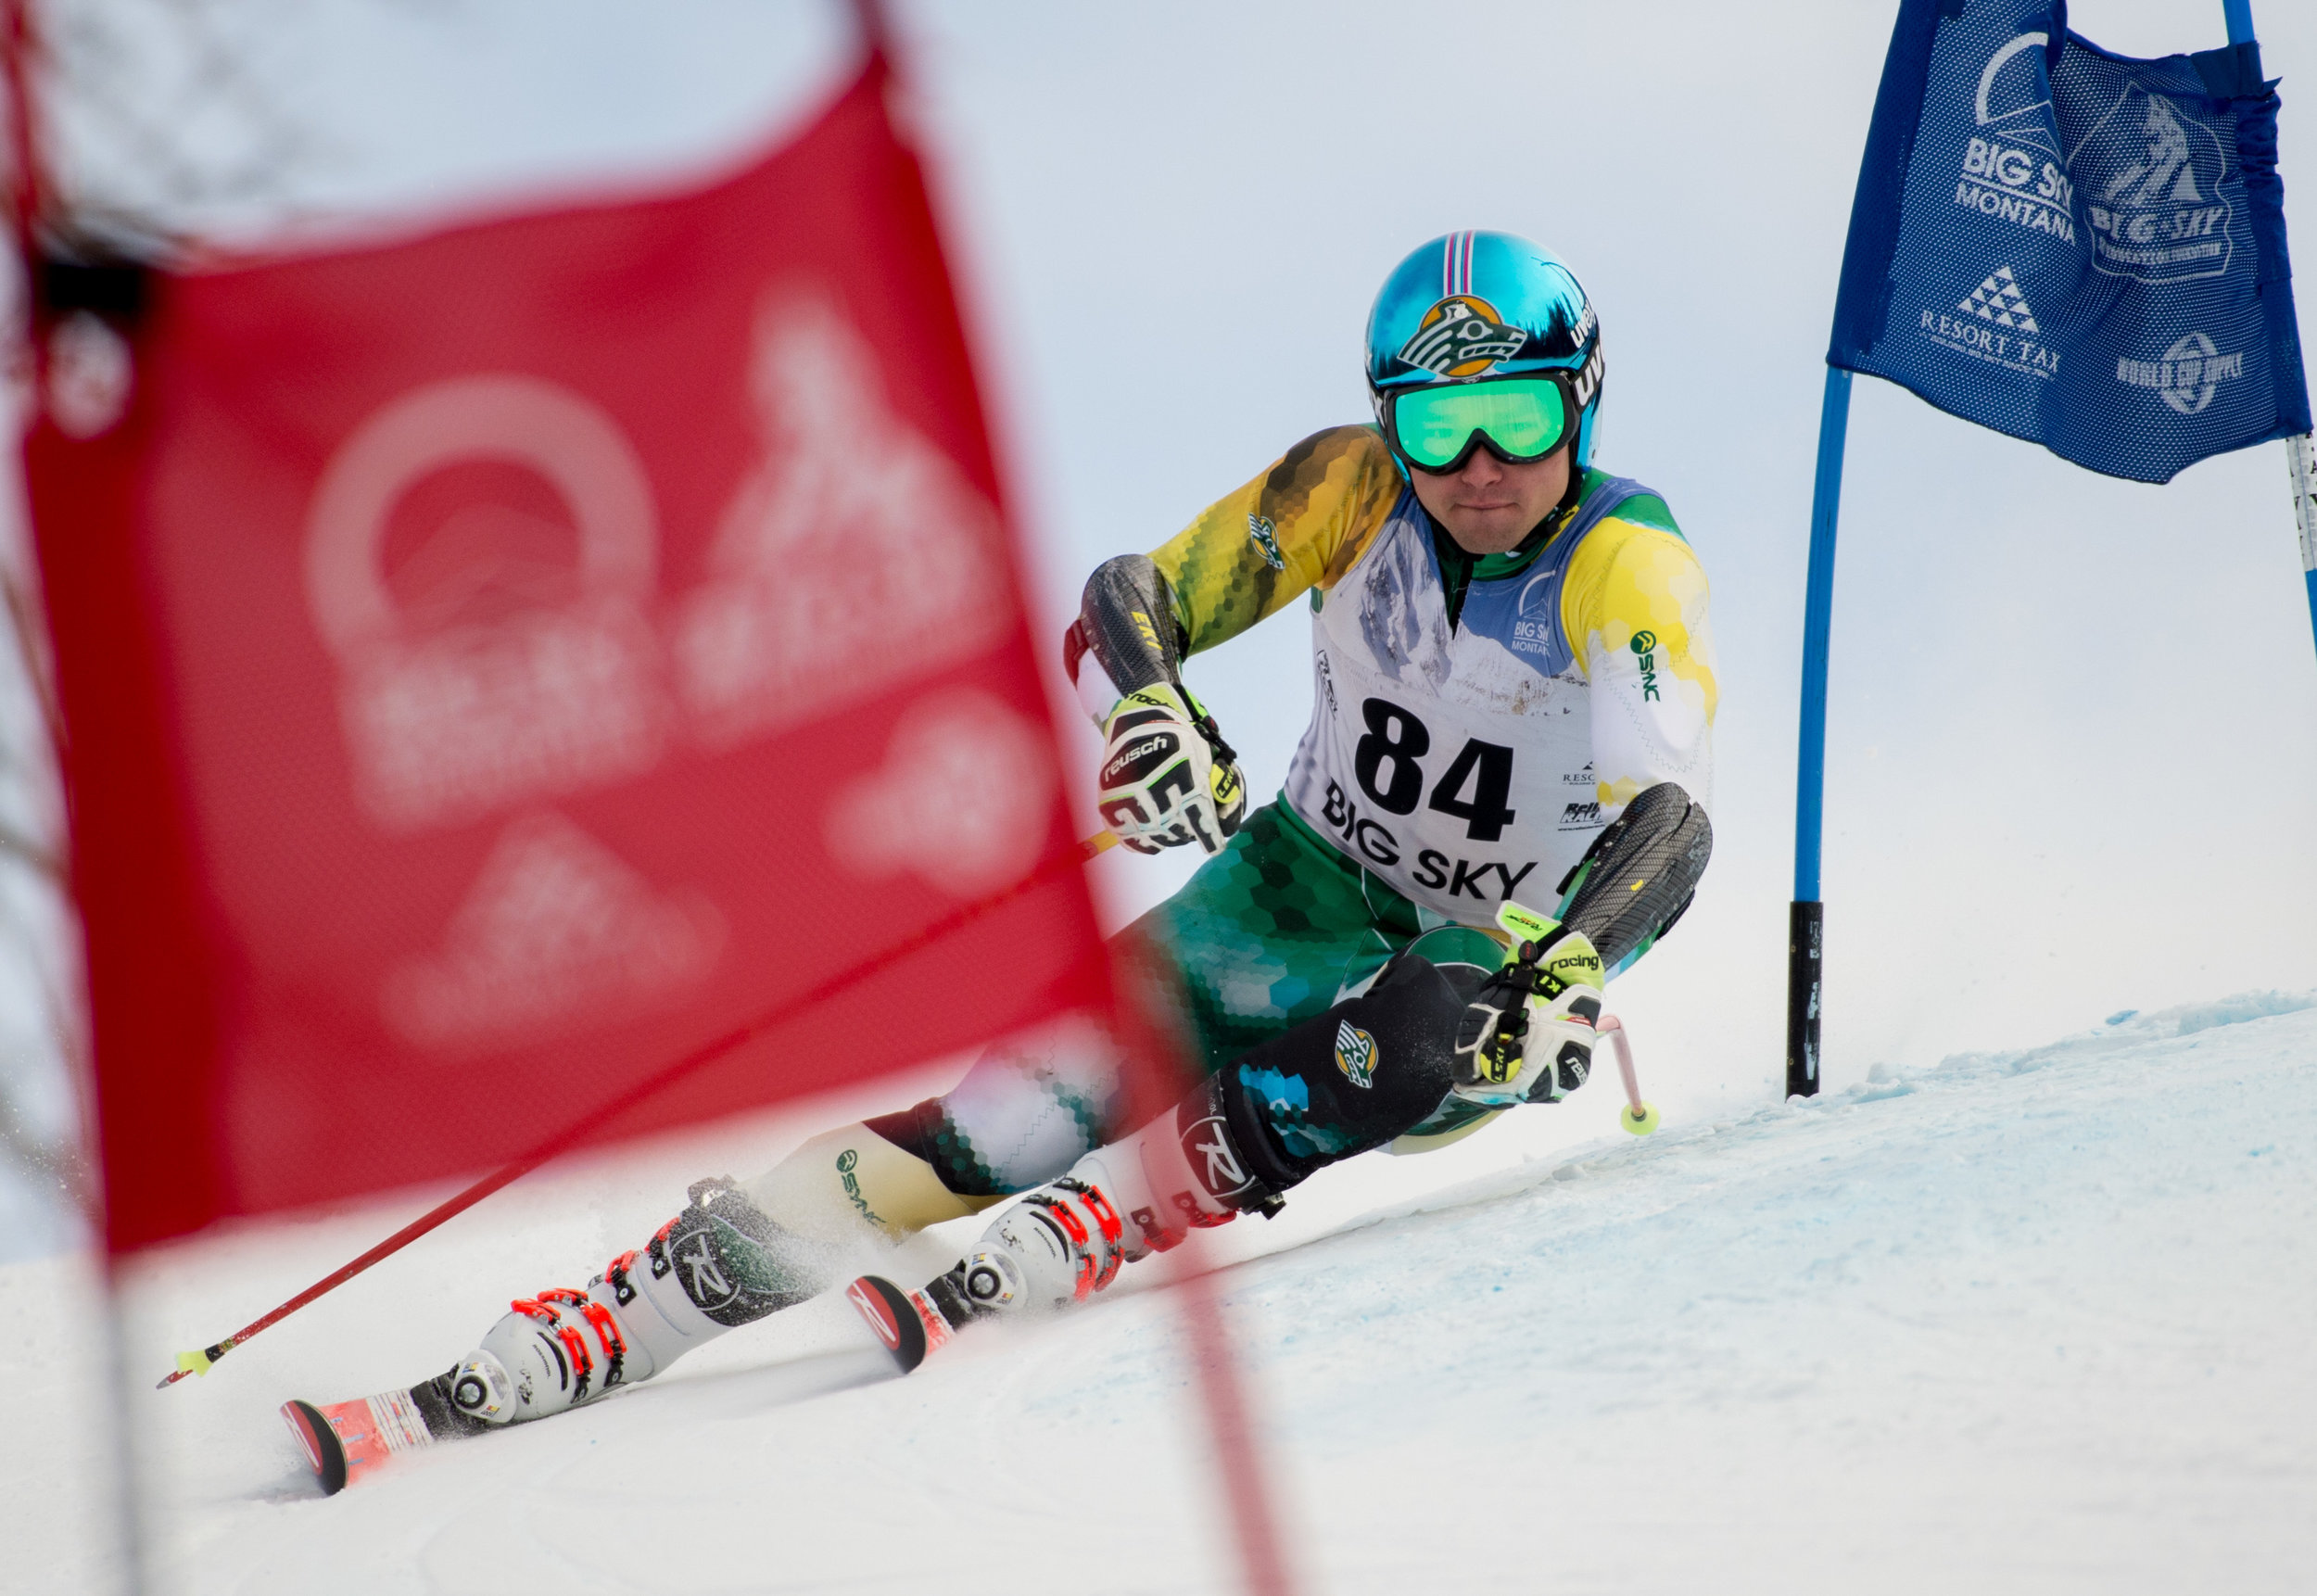 University of Alaska-Anchorage ski racer Martins Onskulis turns a gate during the first run of the mens giant slalom race in the Montana State University FIS Invitational Big Sky Resort on Sunday, Jan. 07, 2018